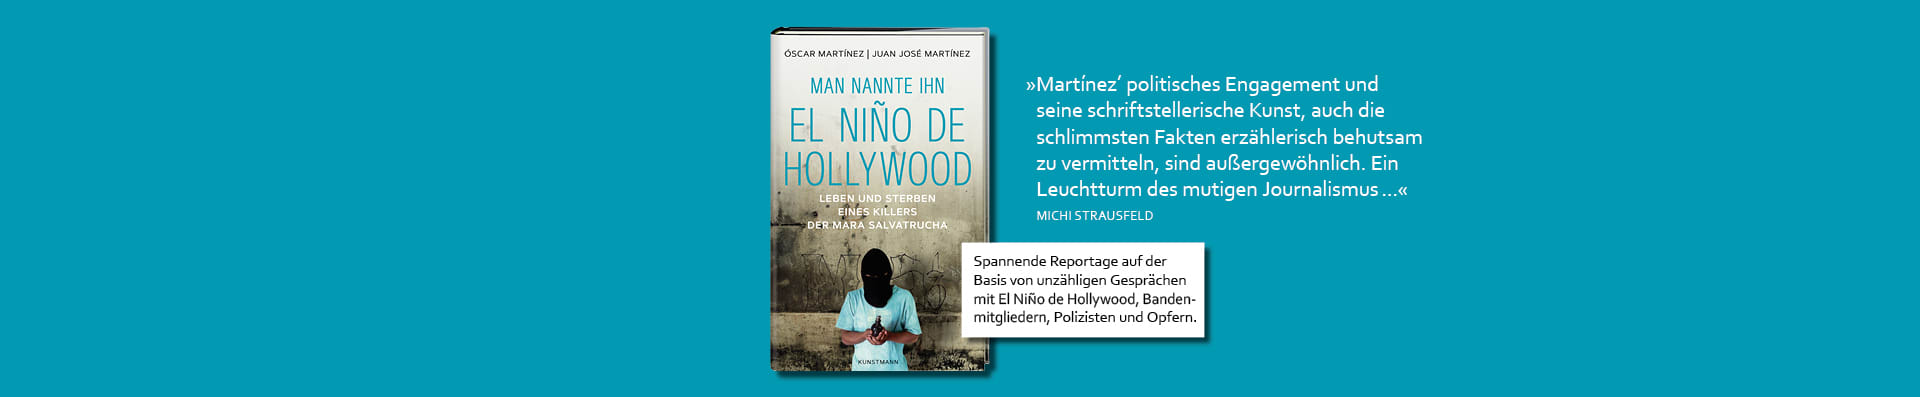 Martinez – Man nannte ihn El niño de Hollywood